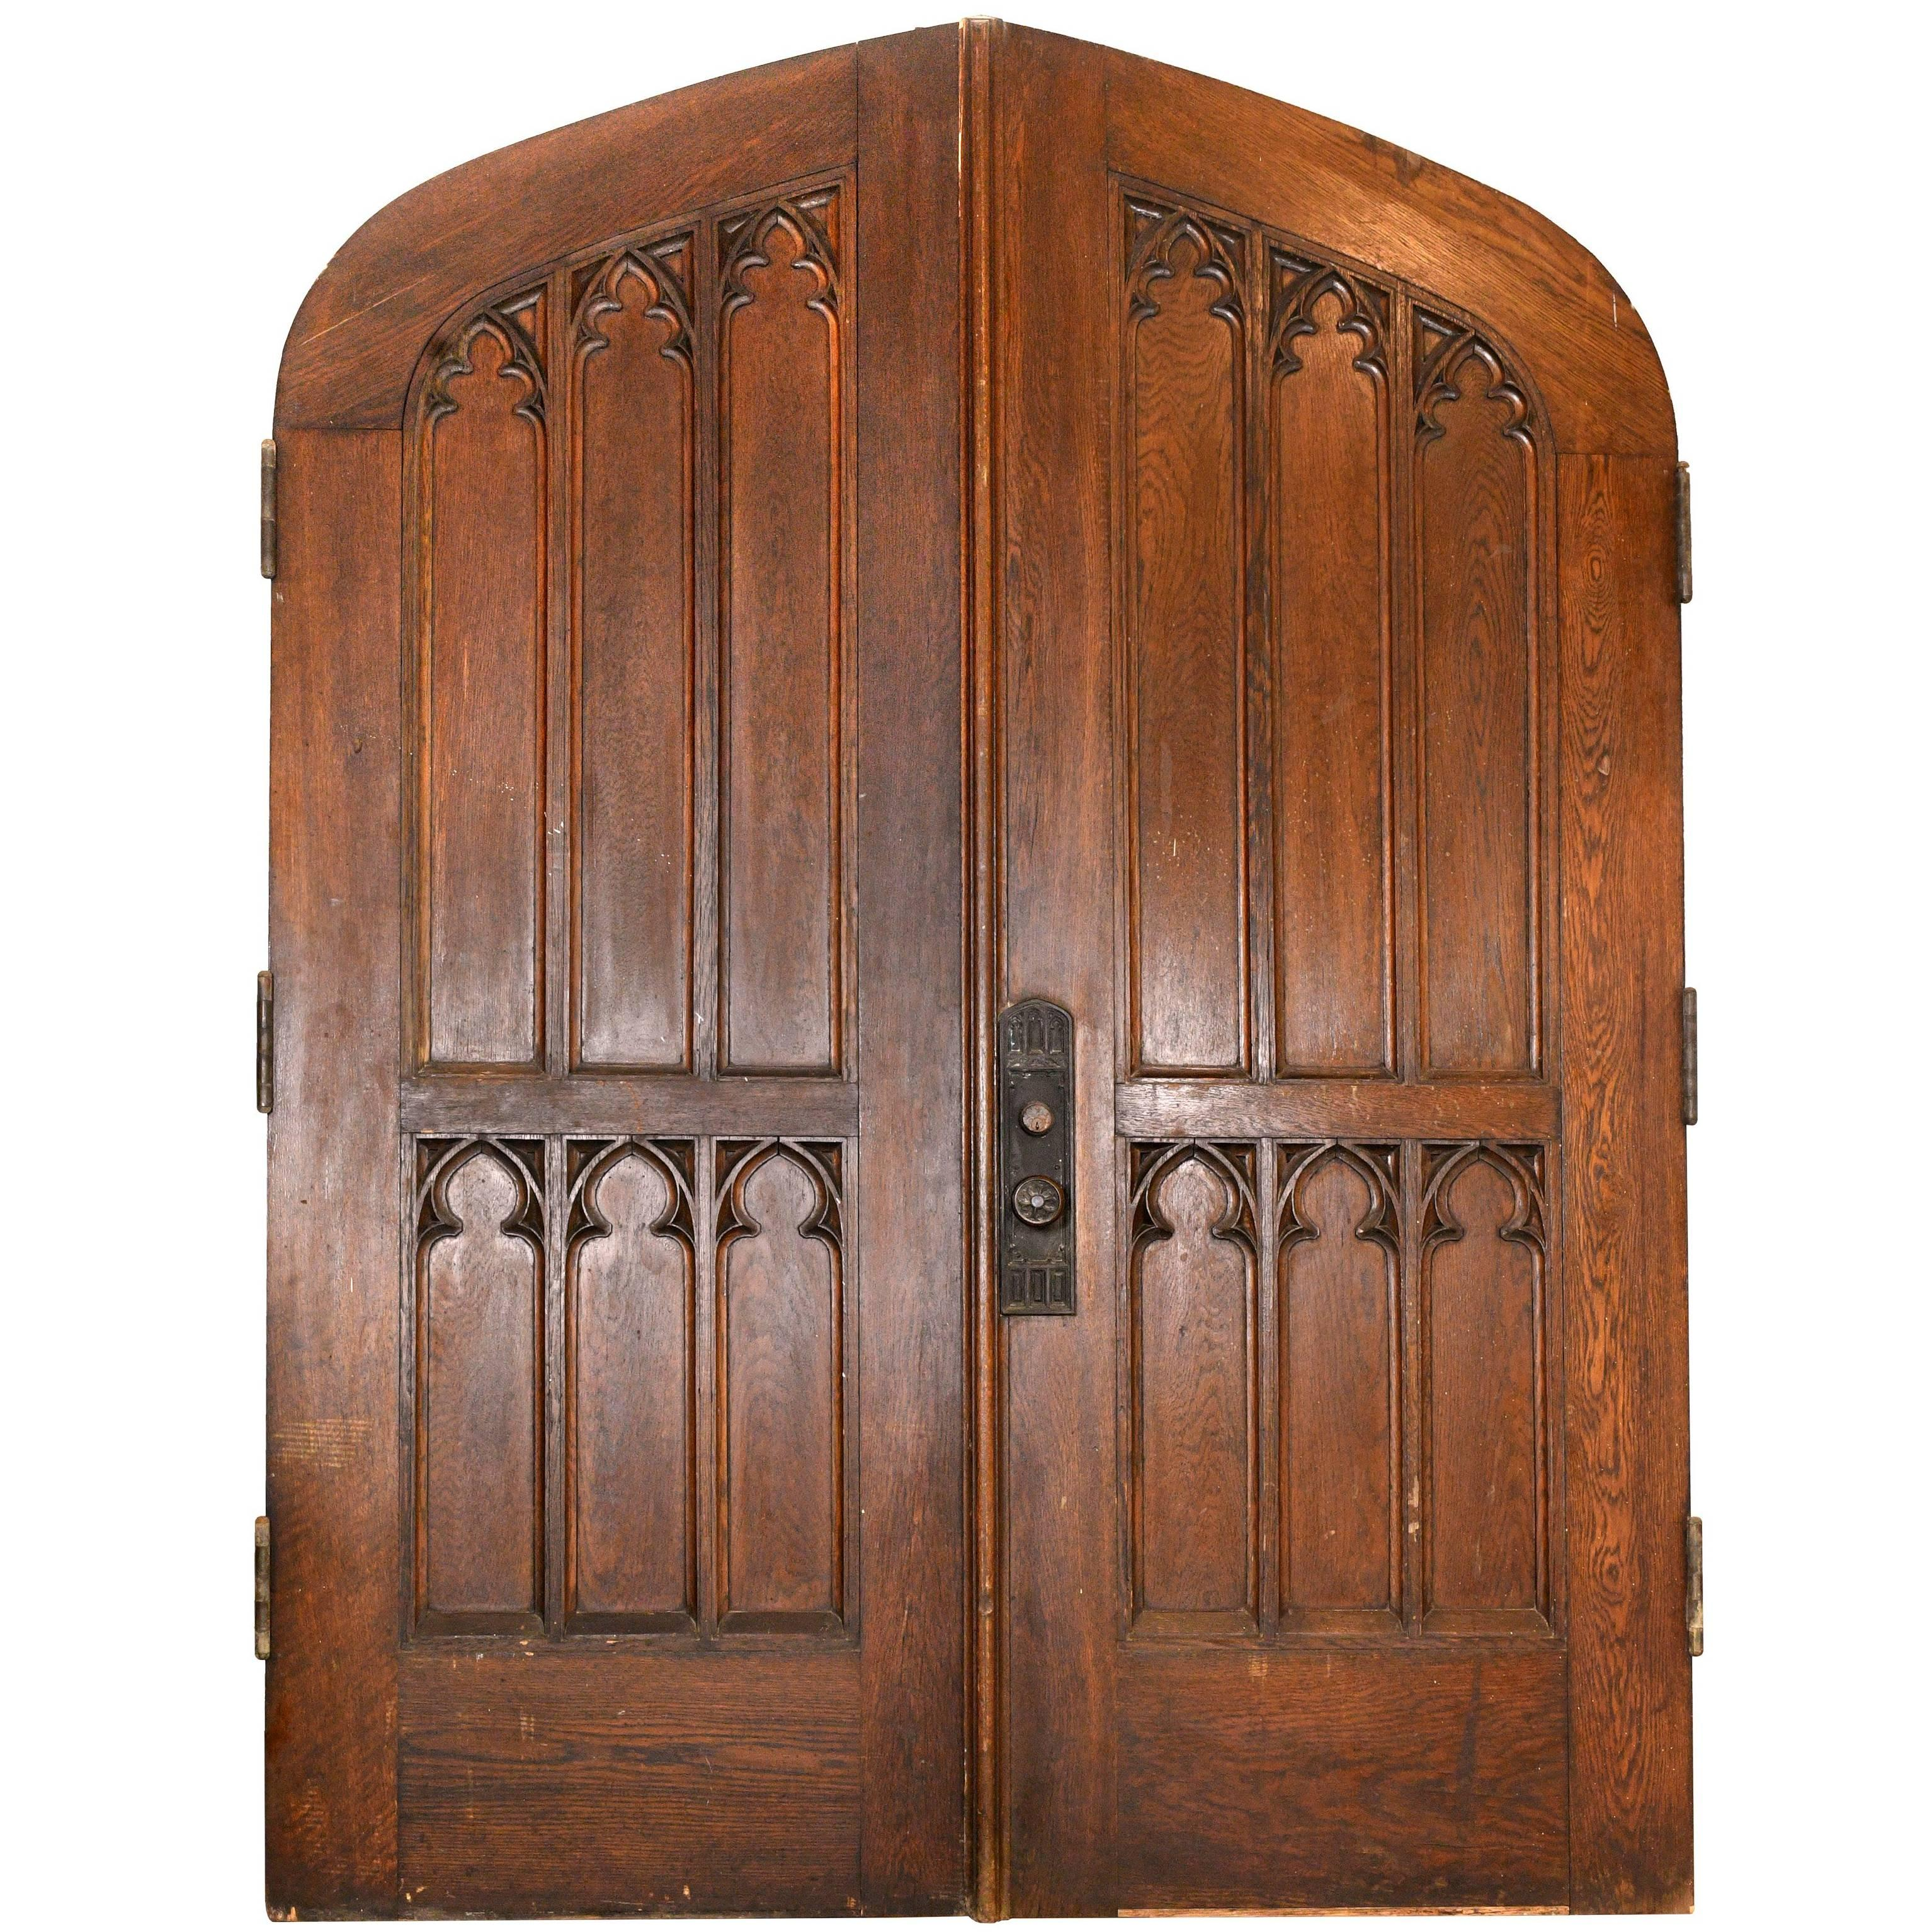 Arched Gothic Oak Double Doors For Sale